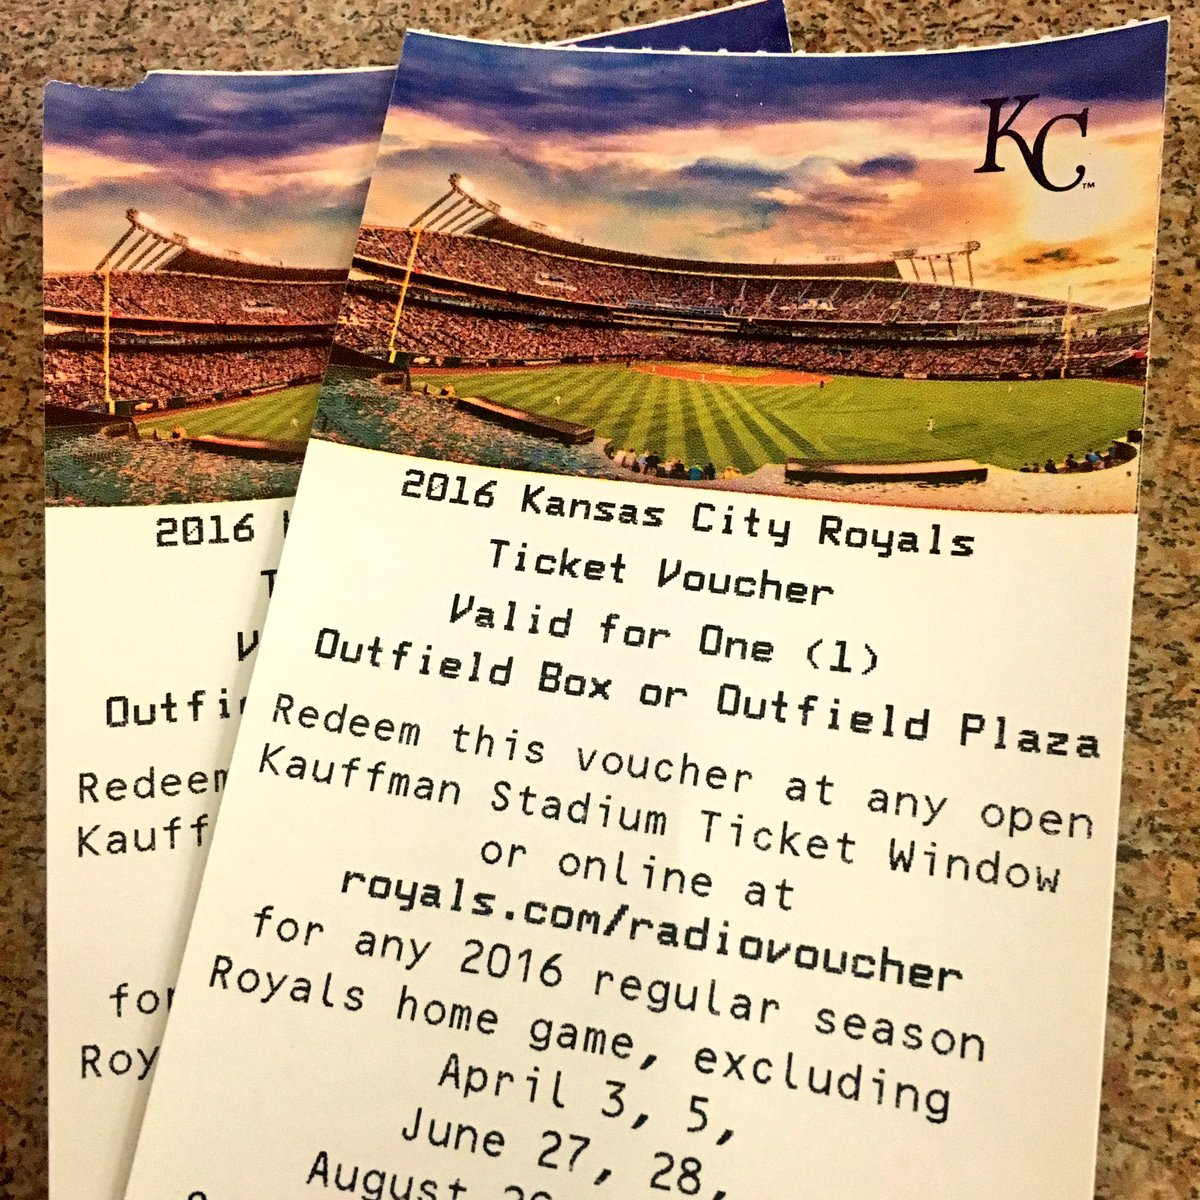 Studying for finals AND dreaming of going to a @Royals game? RT for a chance at free tickets! https://t.co/DYaUR36pIL